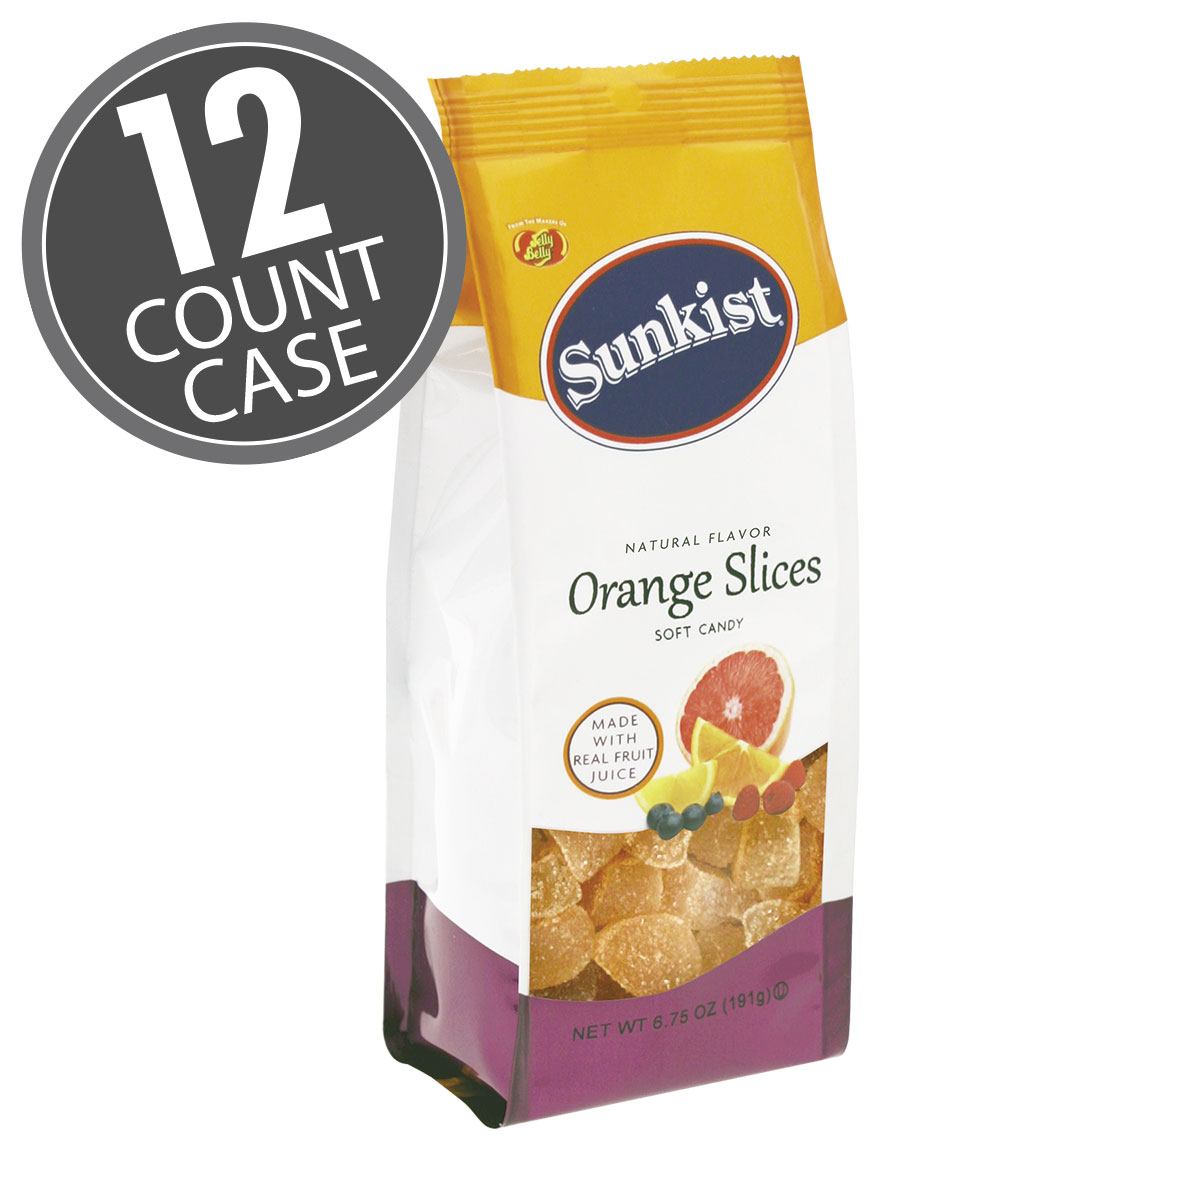 Sunkist® Orange Slices - 6.75 oz Gift Bags - 12-Count Case